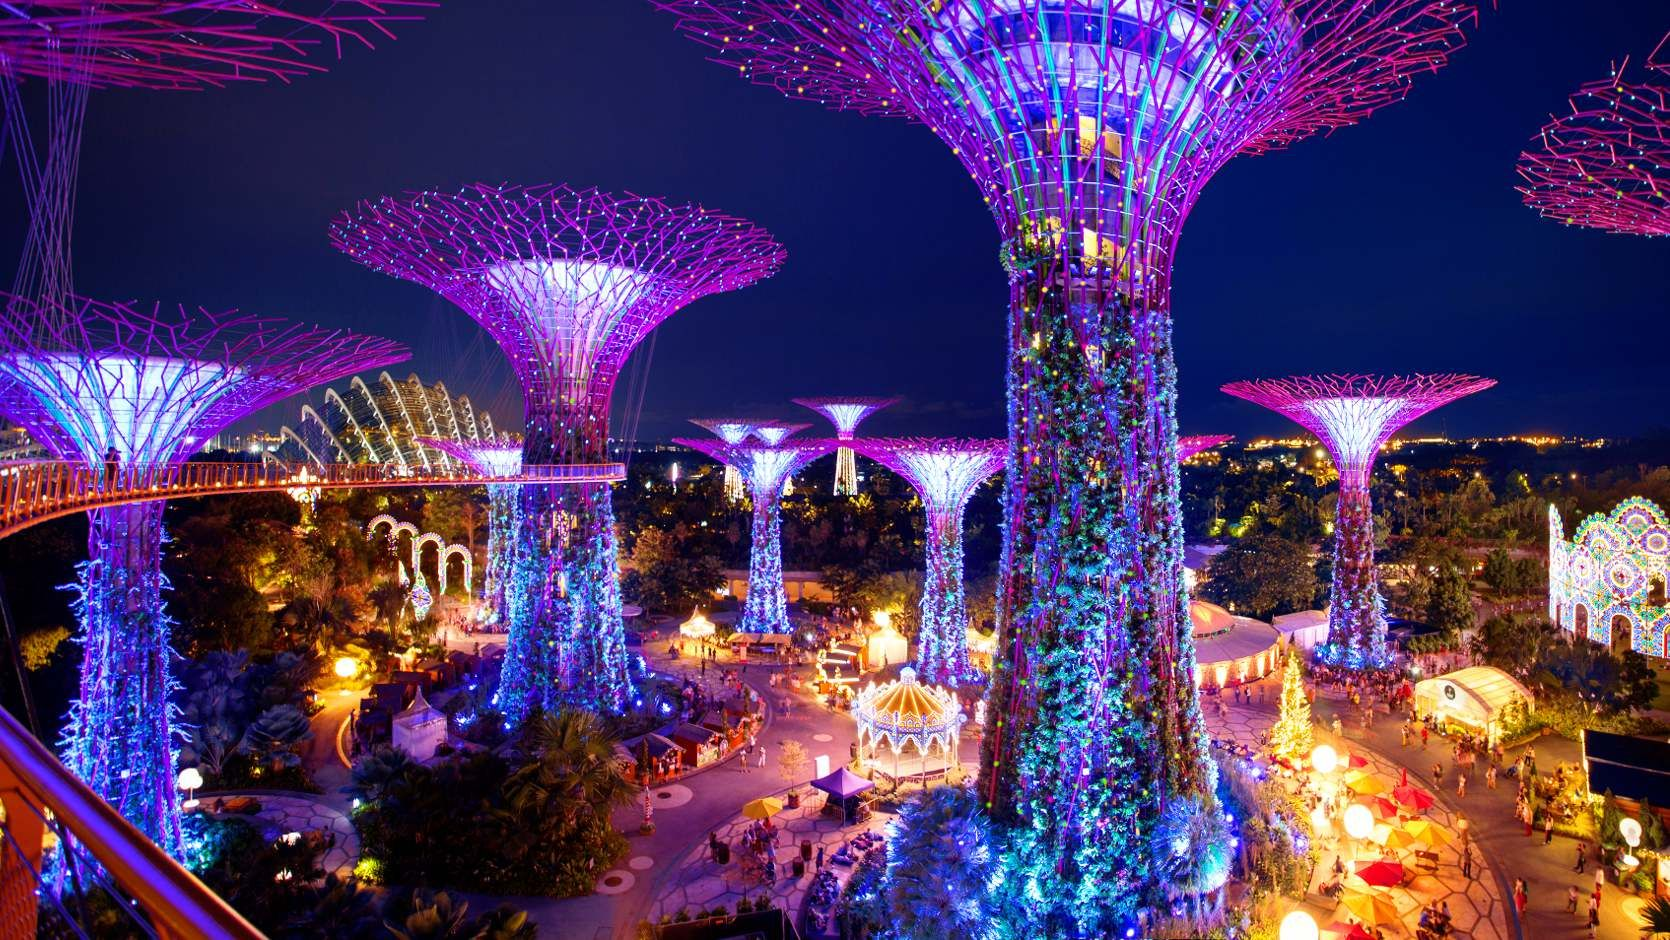 31c2eab6a3a00def18d6a4ab8cb58eb1 - Marina Bay Gardens Light Show Time